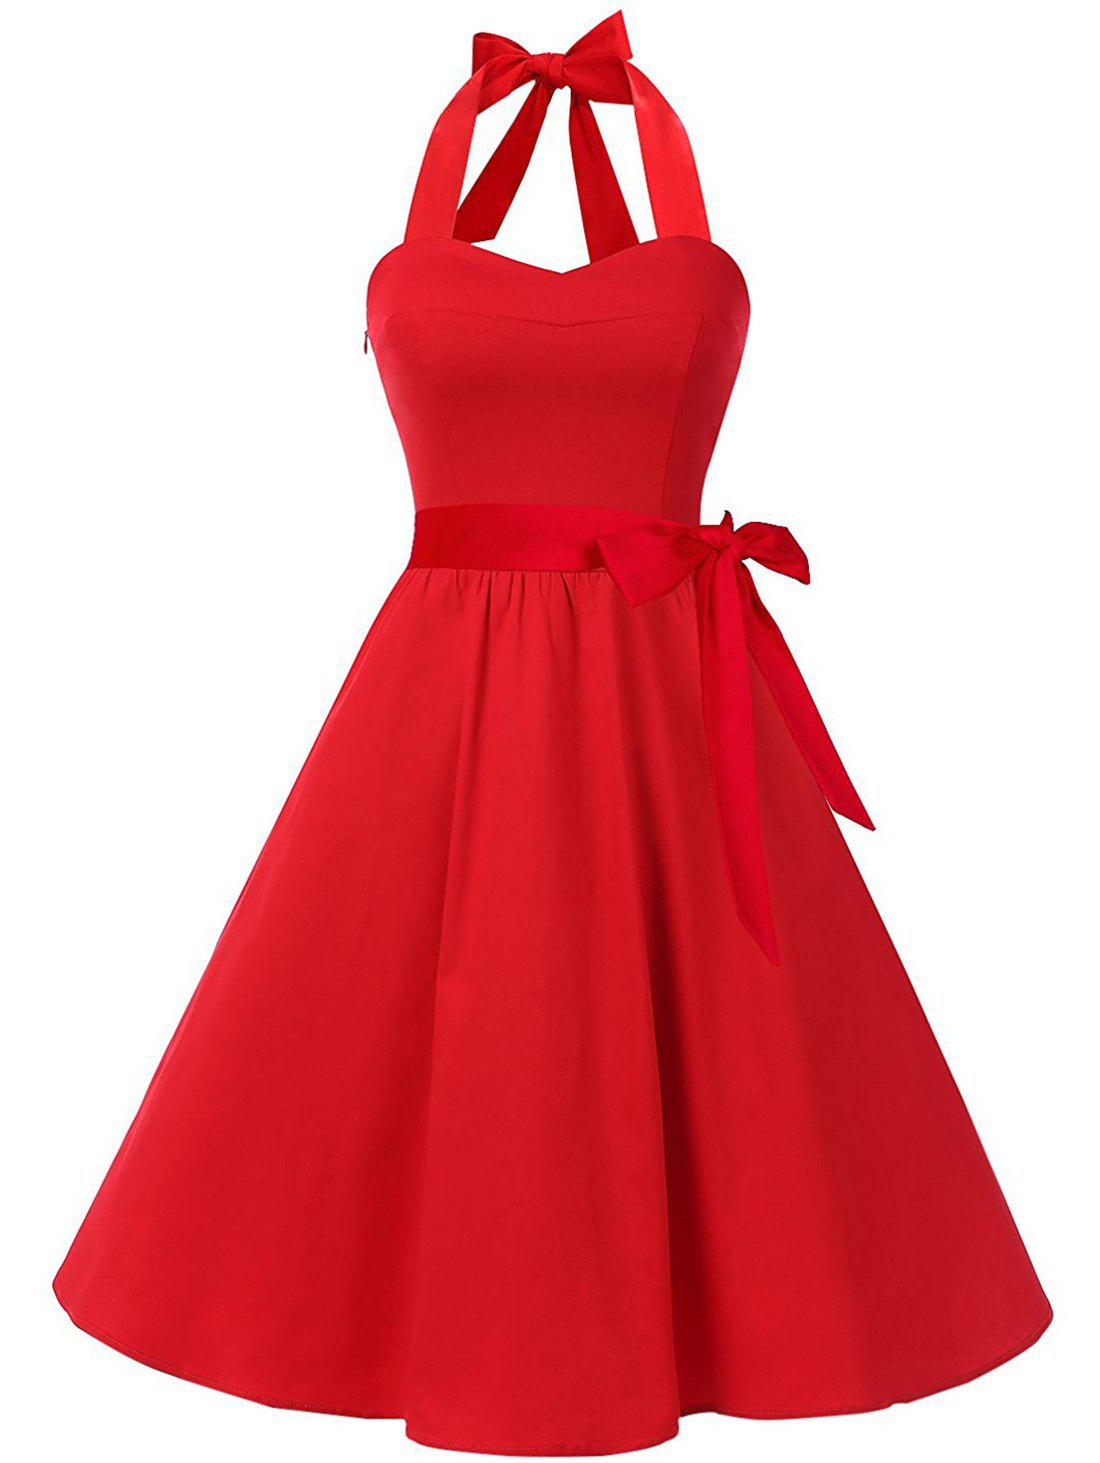 Retro Halter Lace Up Rockabilly Style Swing Dress - RED M